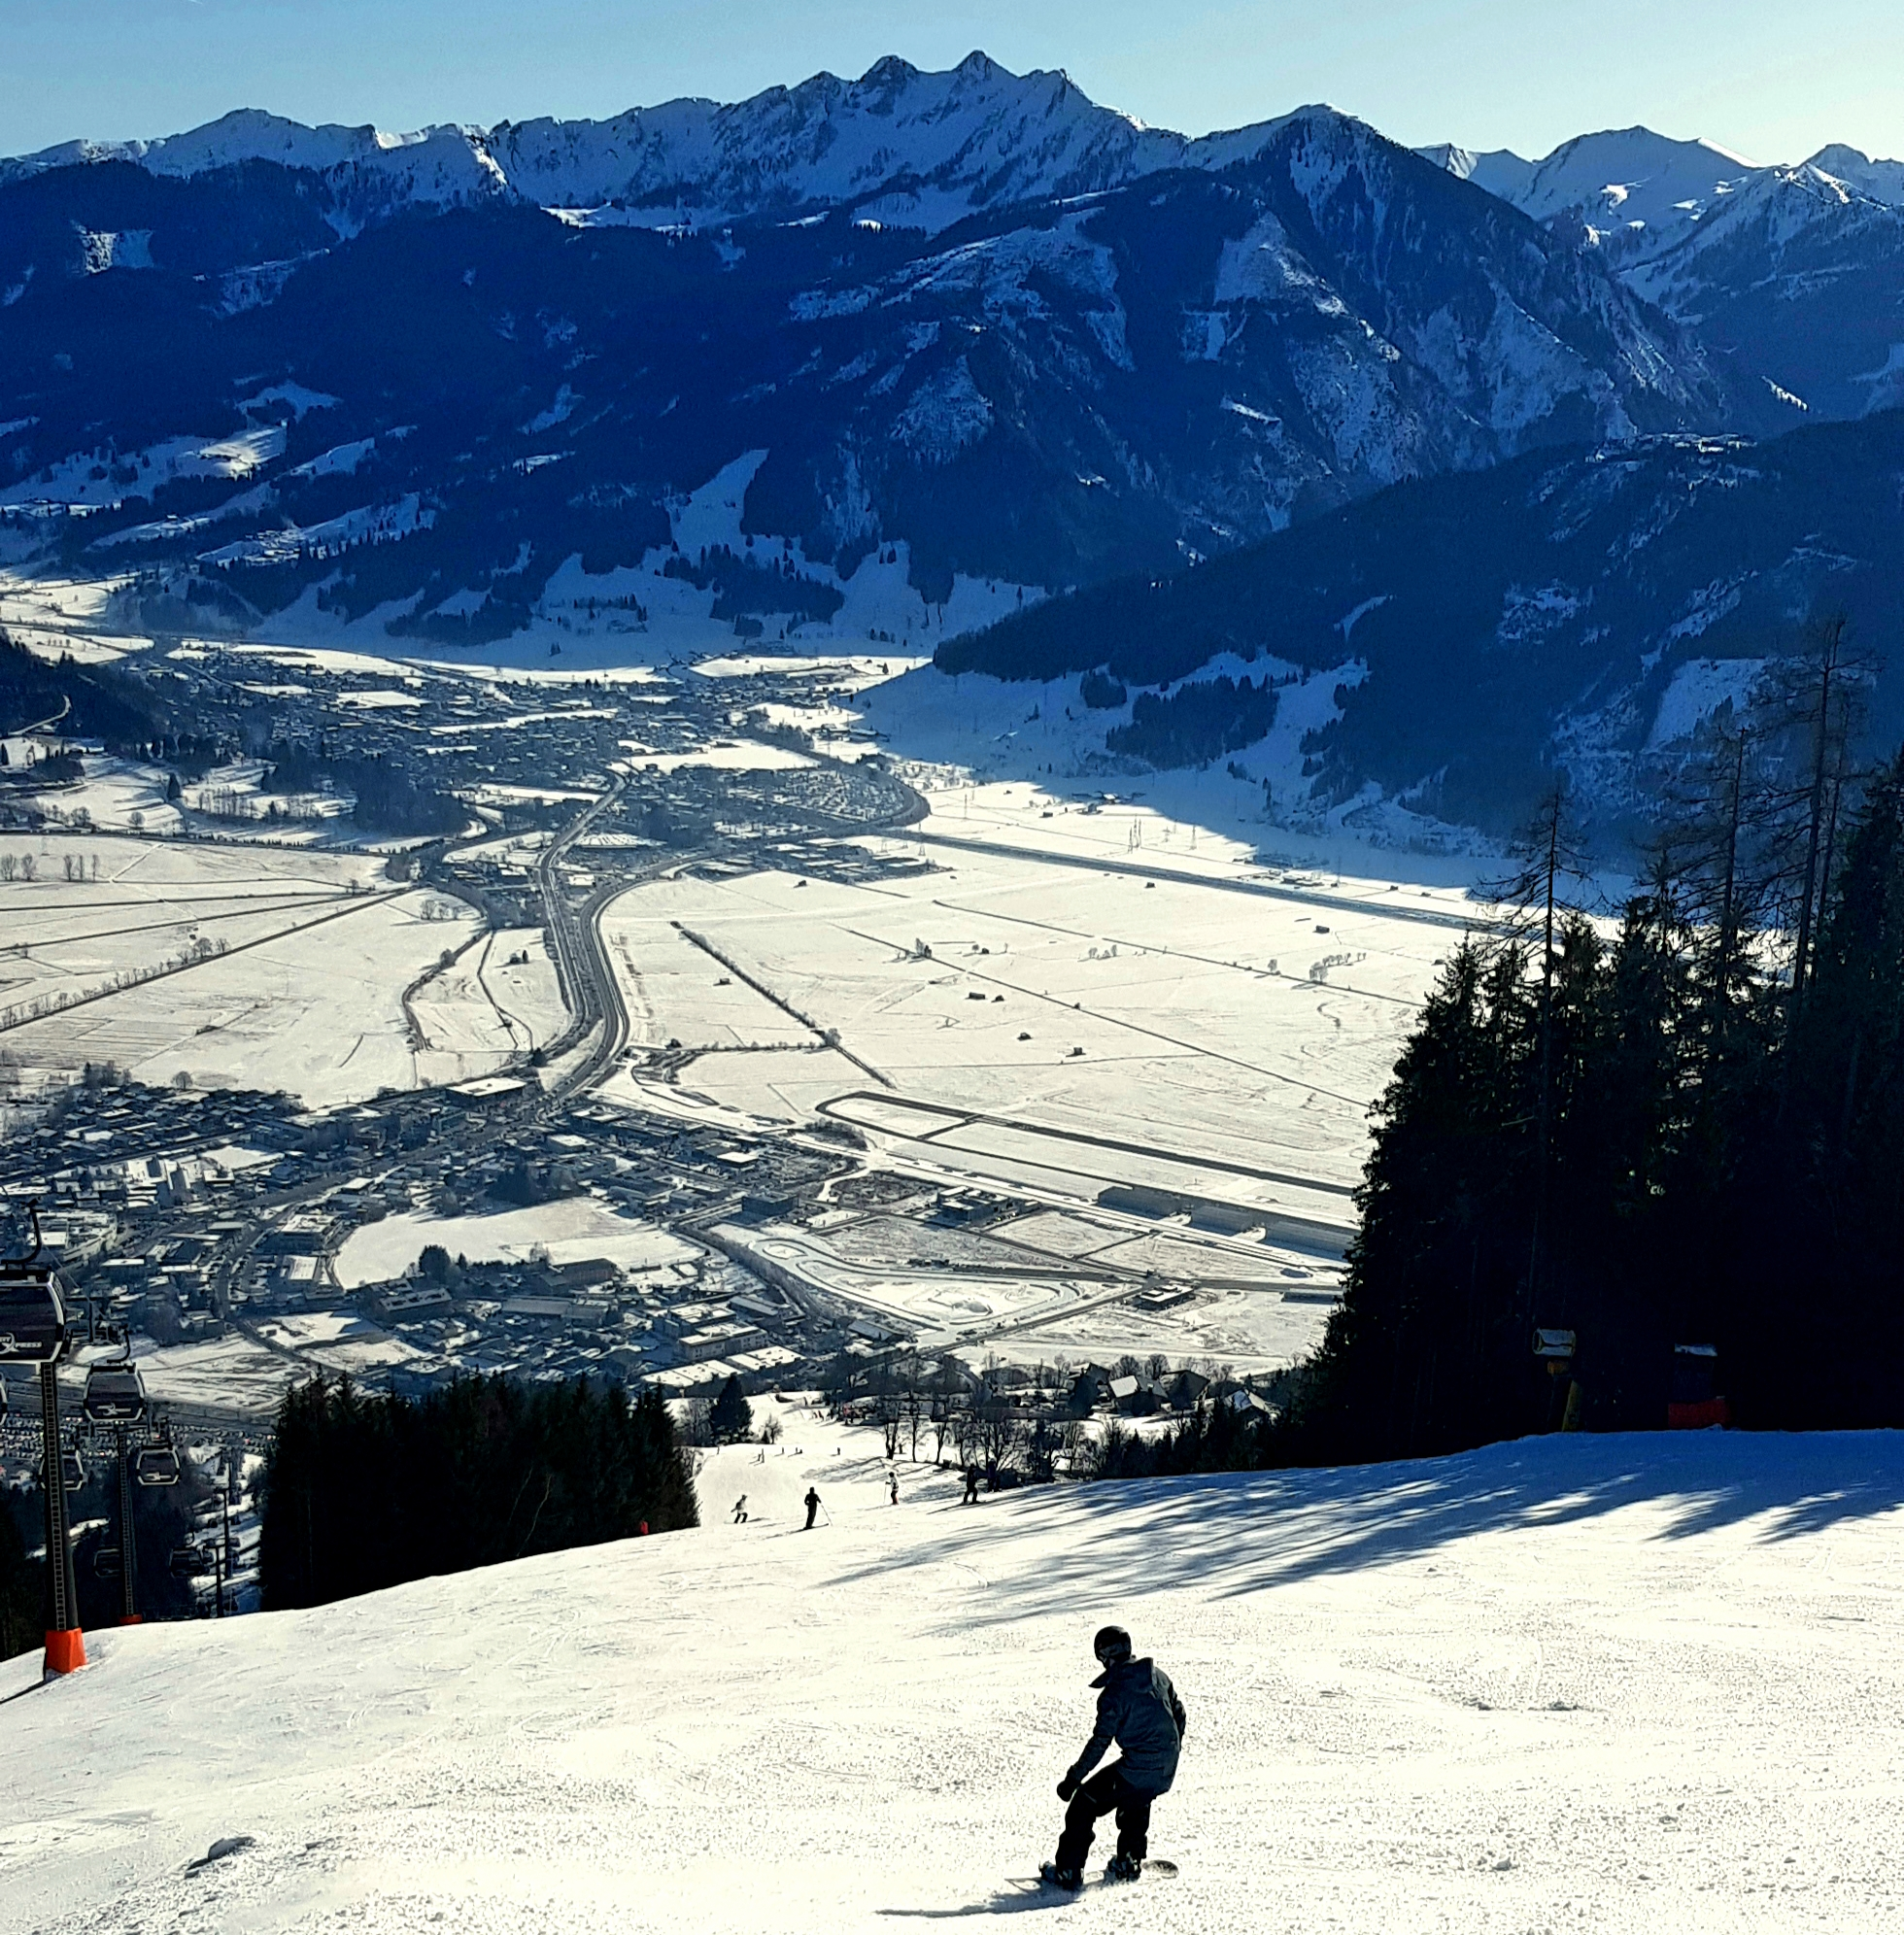 Guided Austria snowboard holiday with tuition in Salzburgerland